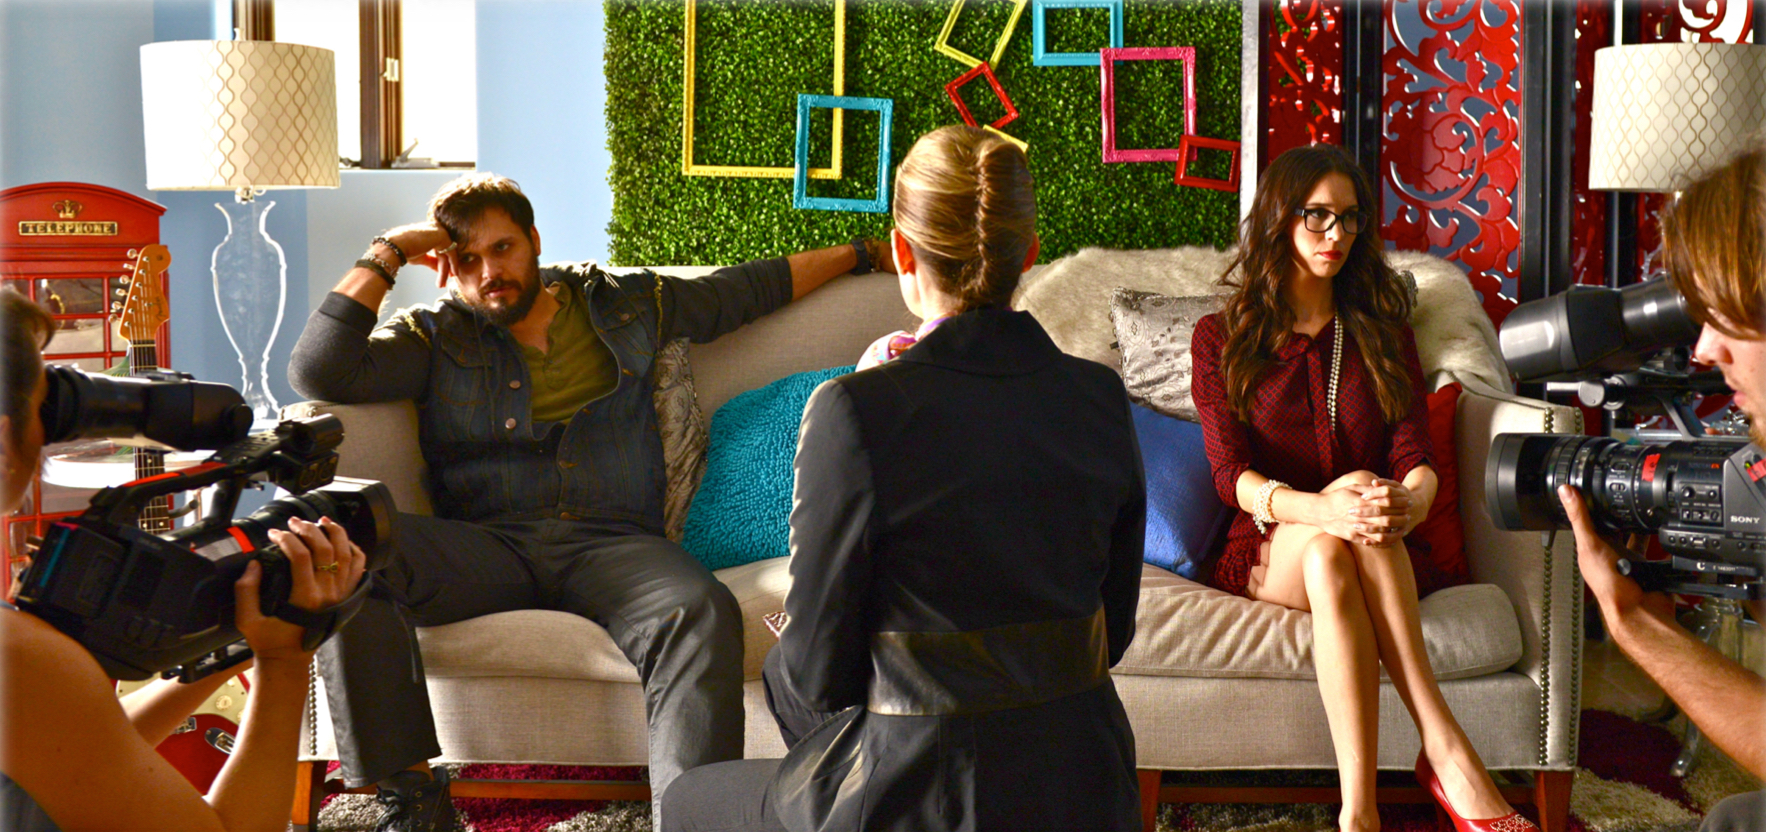 MAX DECKER and CHRISTY CARLSEN ROMANO on the set of REAL LOVE (Short Film '14)